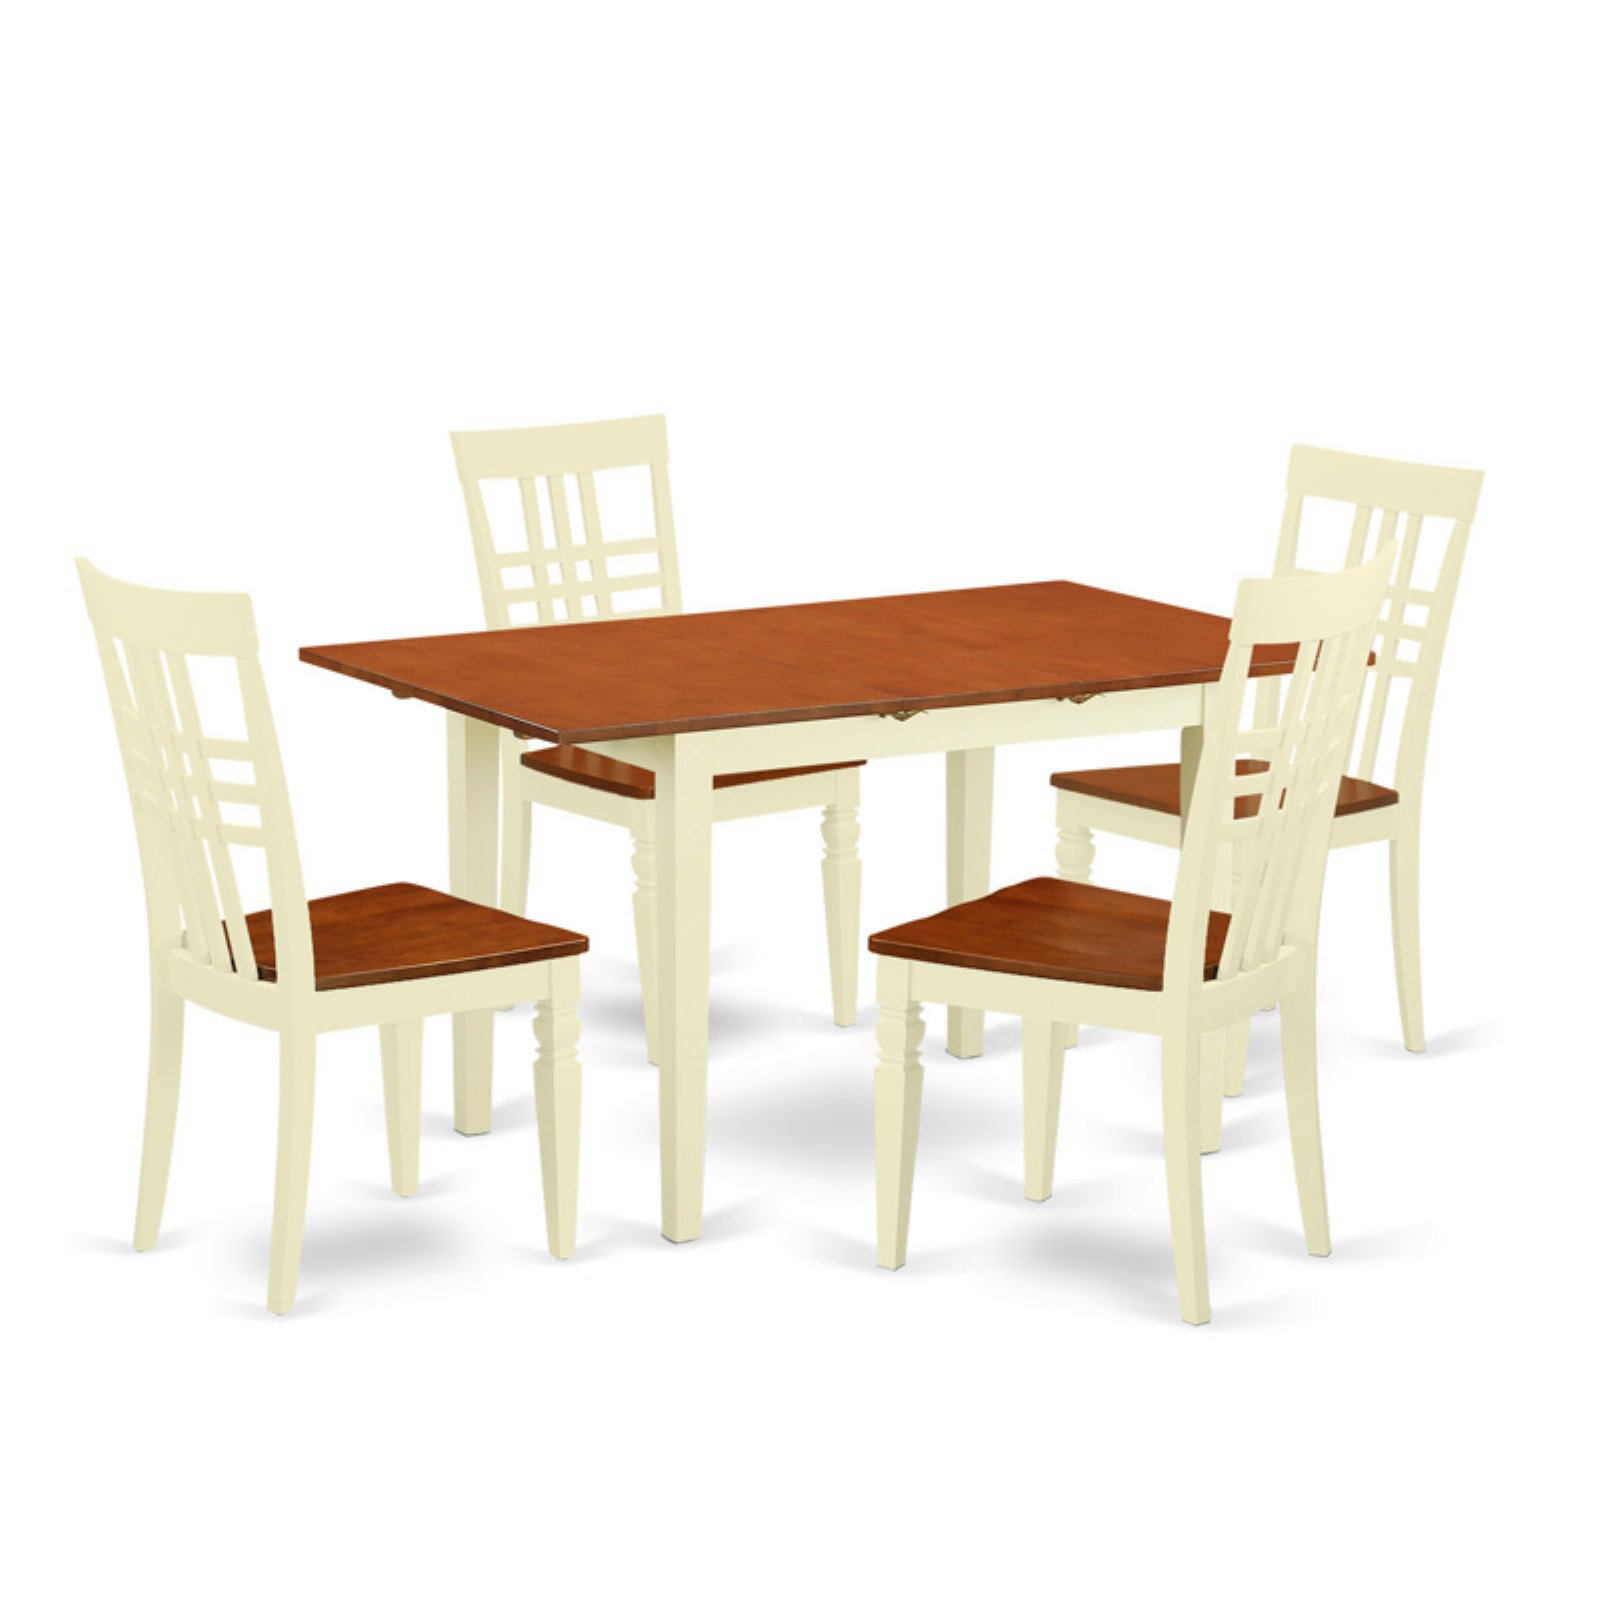 East West Furniture Norfolk 5 Piece Lattice Back Dining Table Set Pertaining To 2018 West Dining Tables (Image 9 of 25)